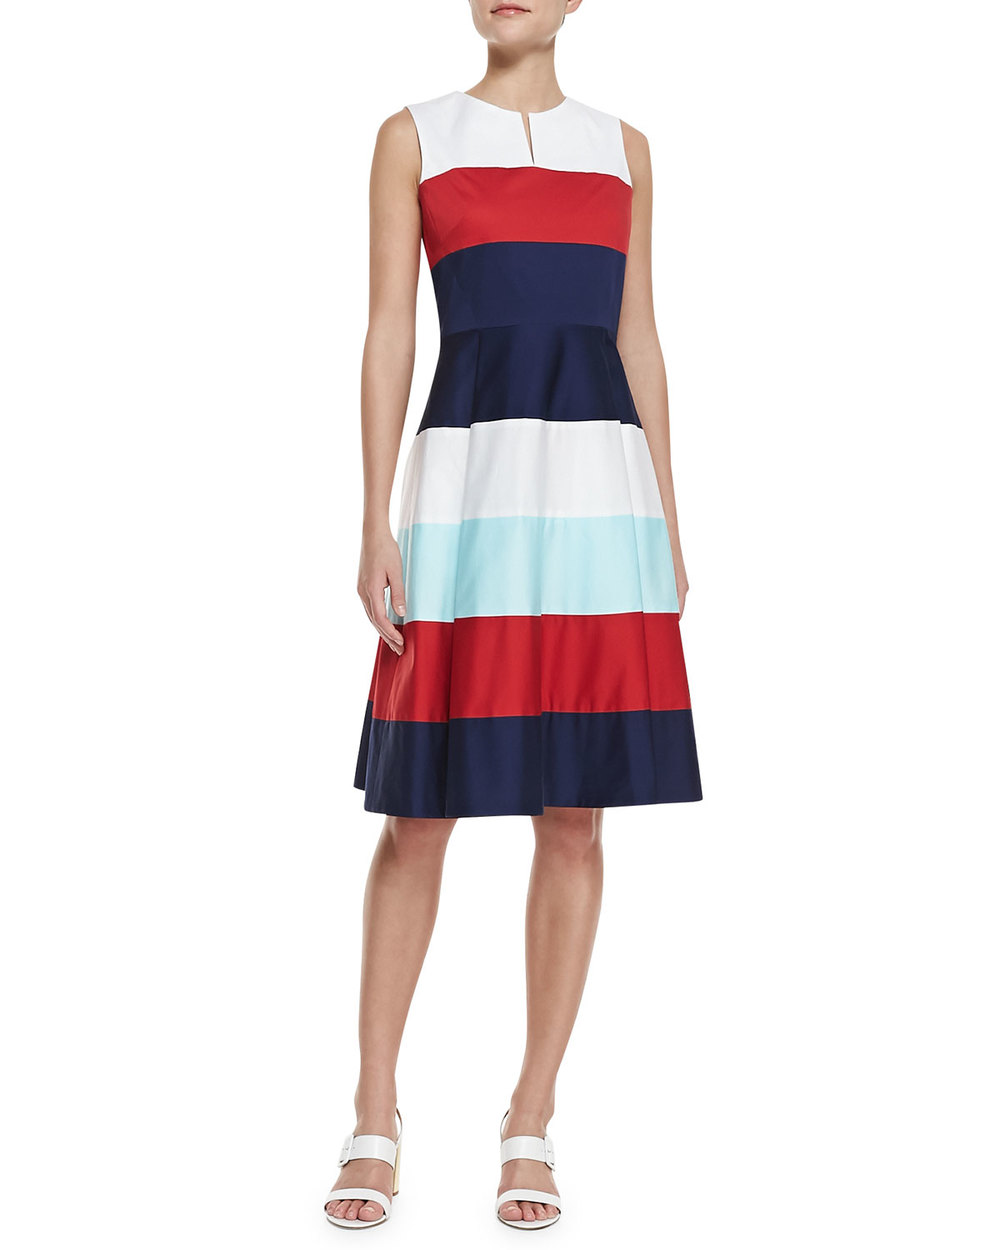 kate spade new york - corley colorblock dress via Neiman Marcus